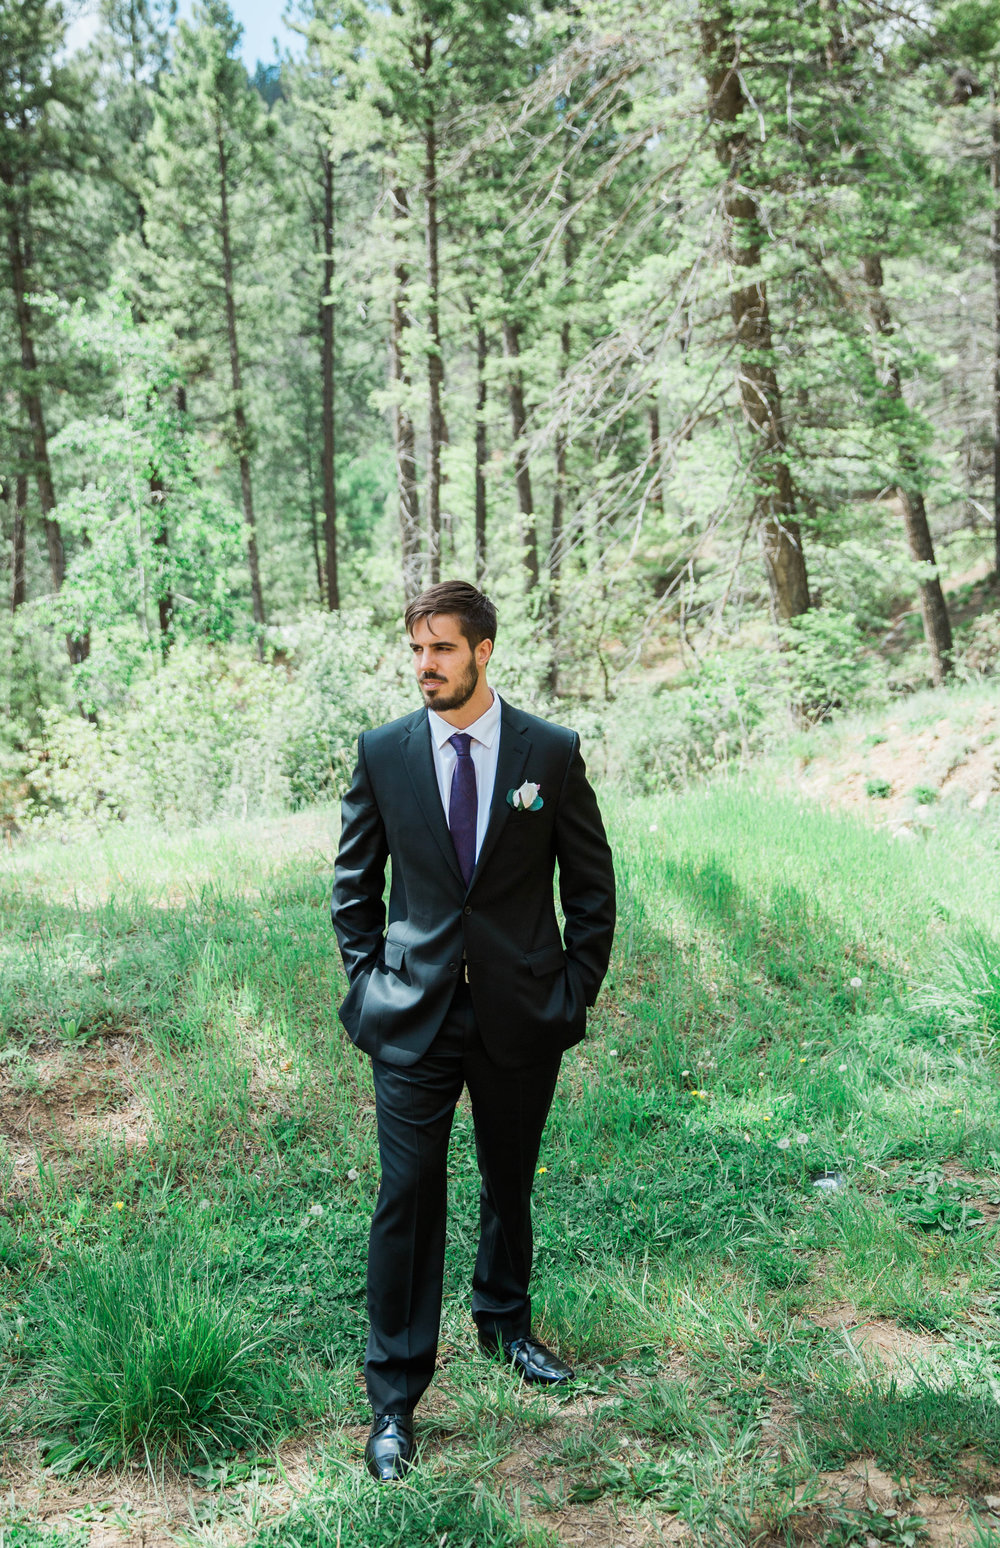 colorado rocky mountain new mexico vail estes park denver colorado springs wedding elopement engagement photographer photography